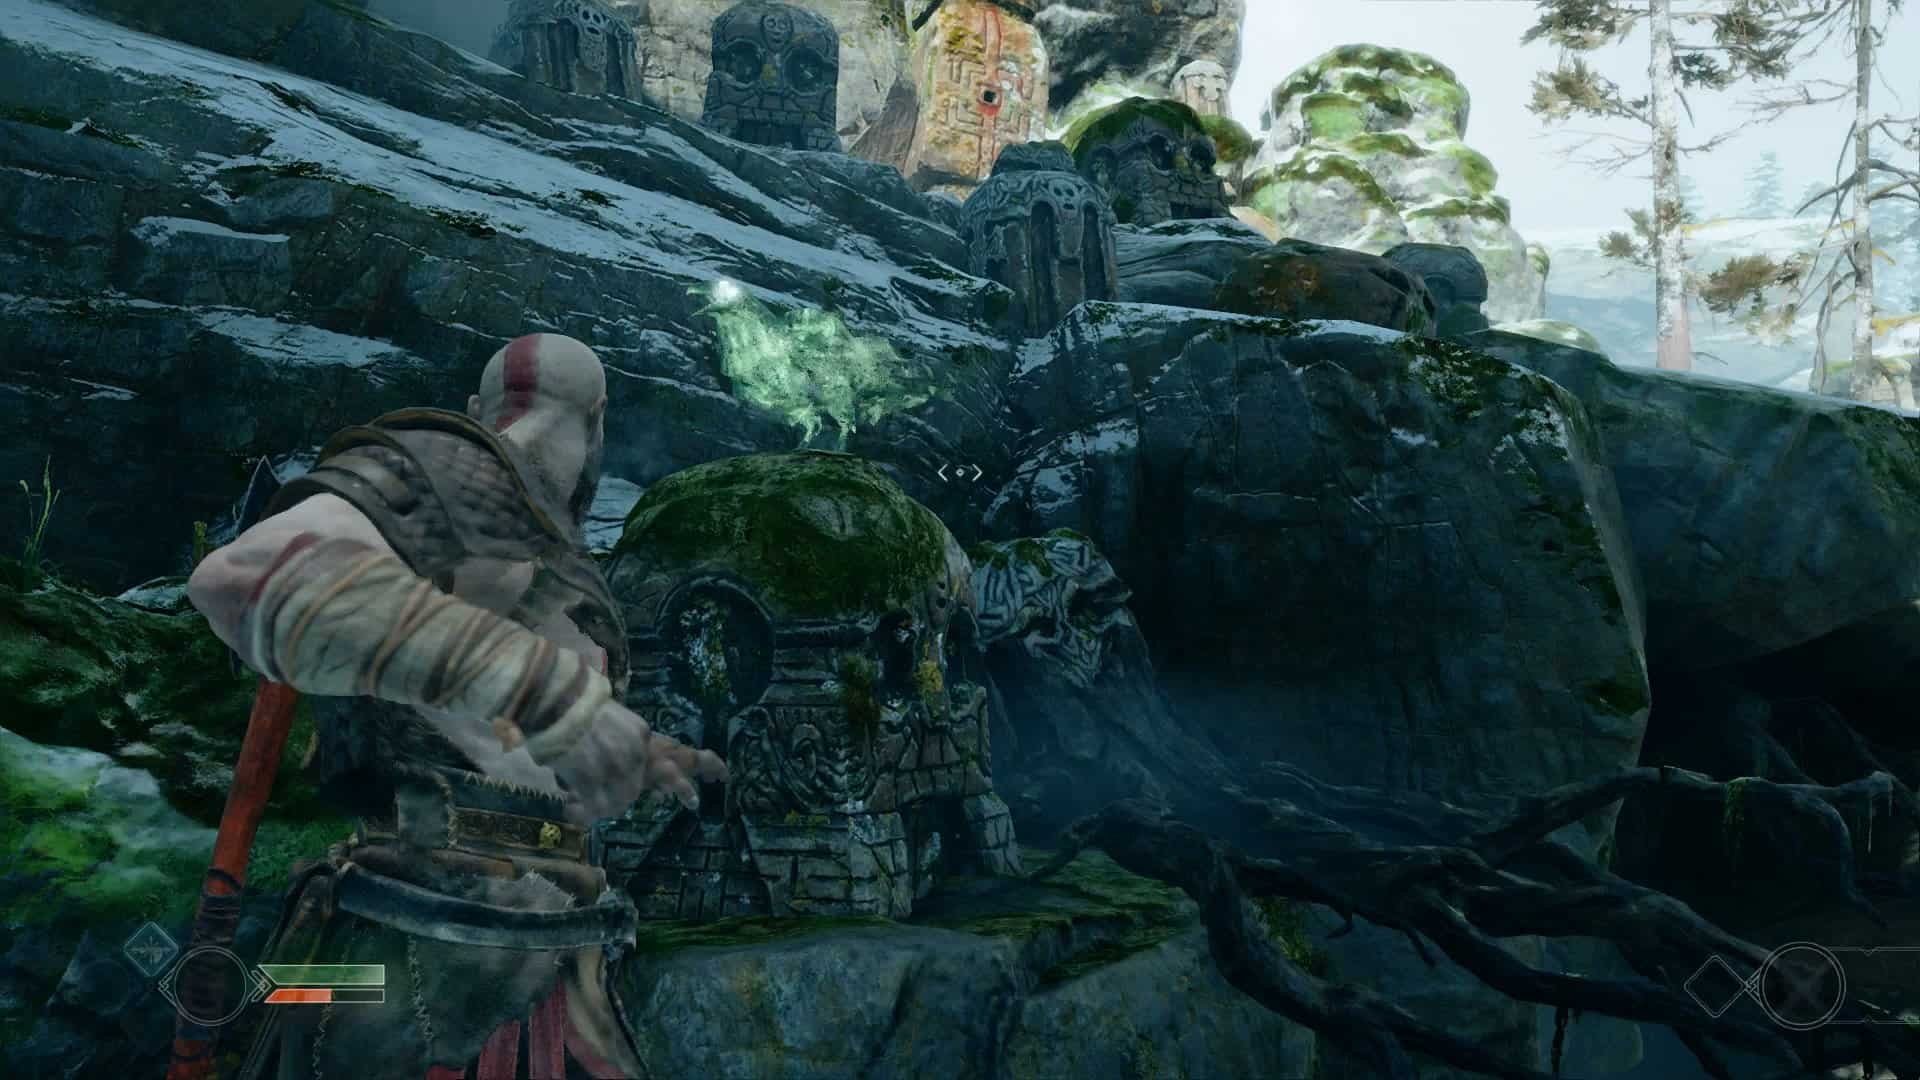 God of War - Corvi di Odino